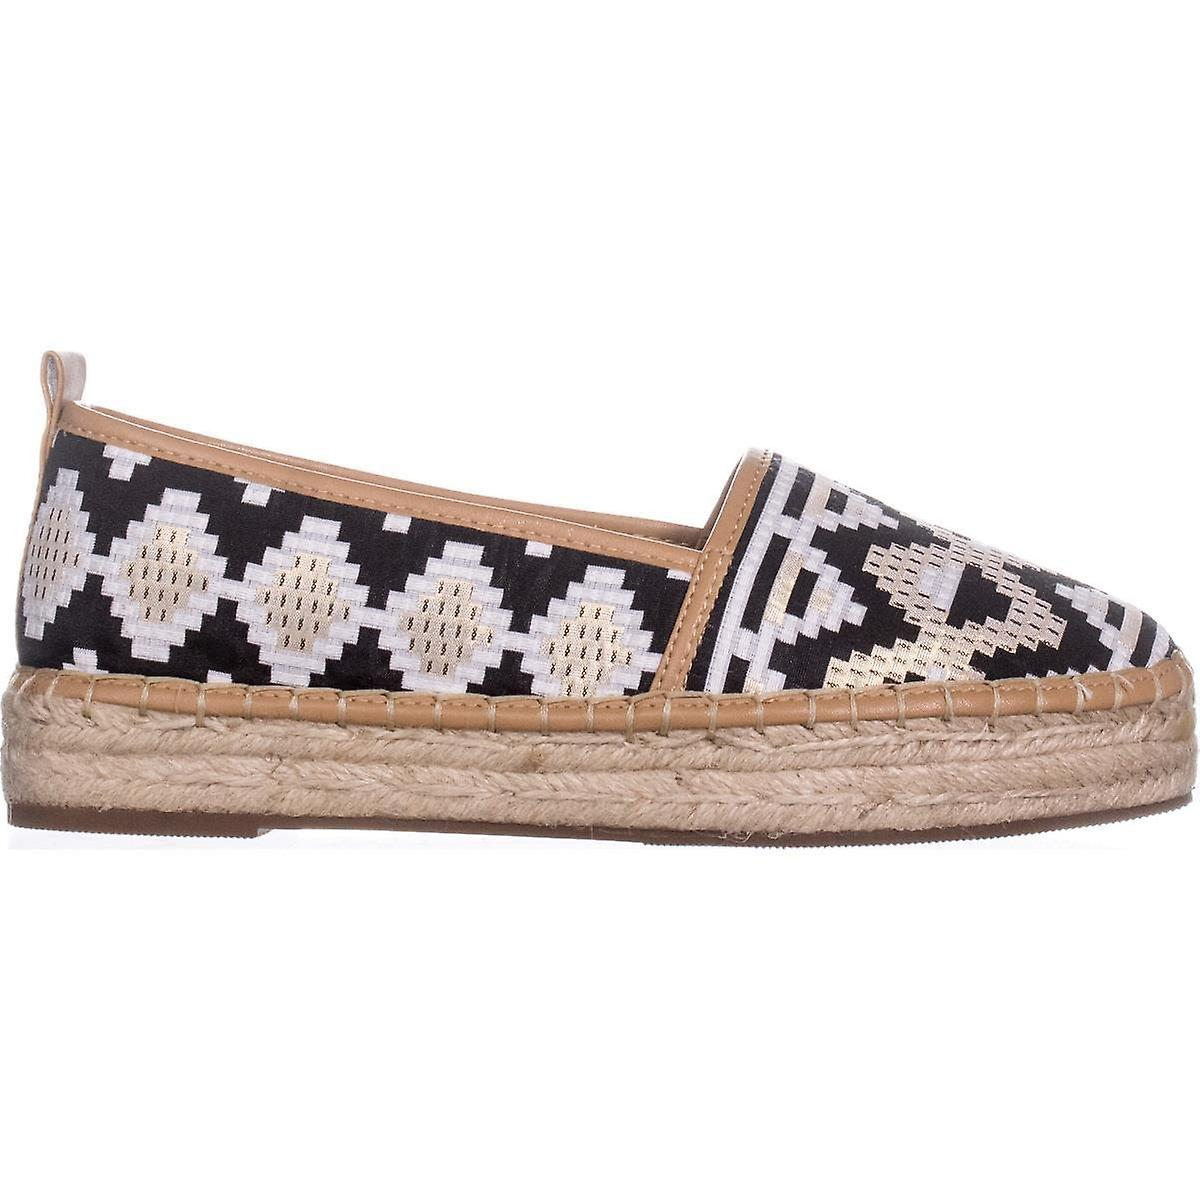 Inc International Concepts Womens Caleyy Closed Toe Espadrille Flats